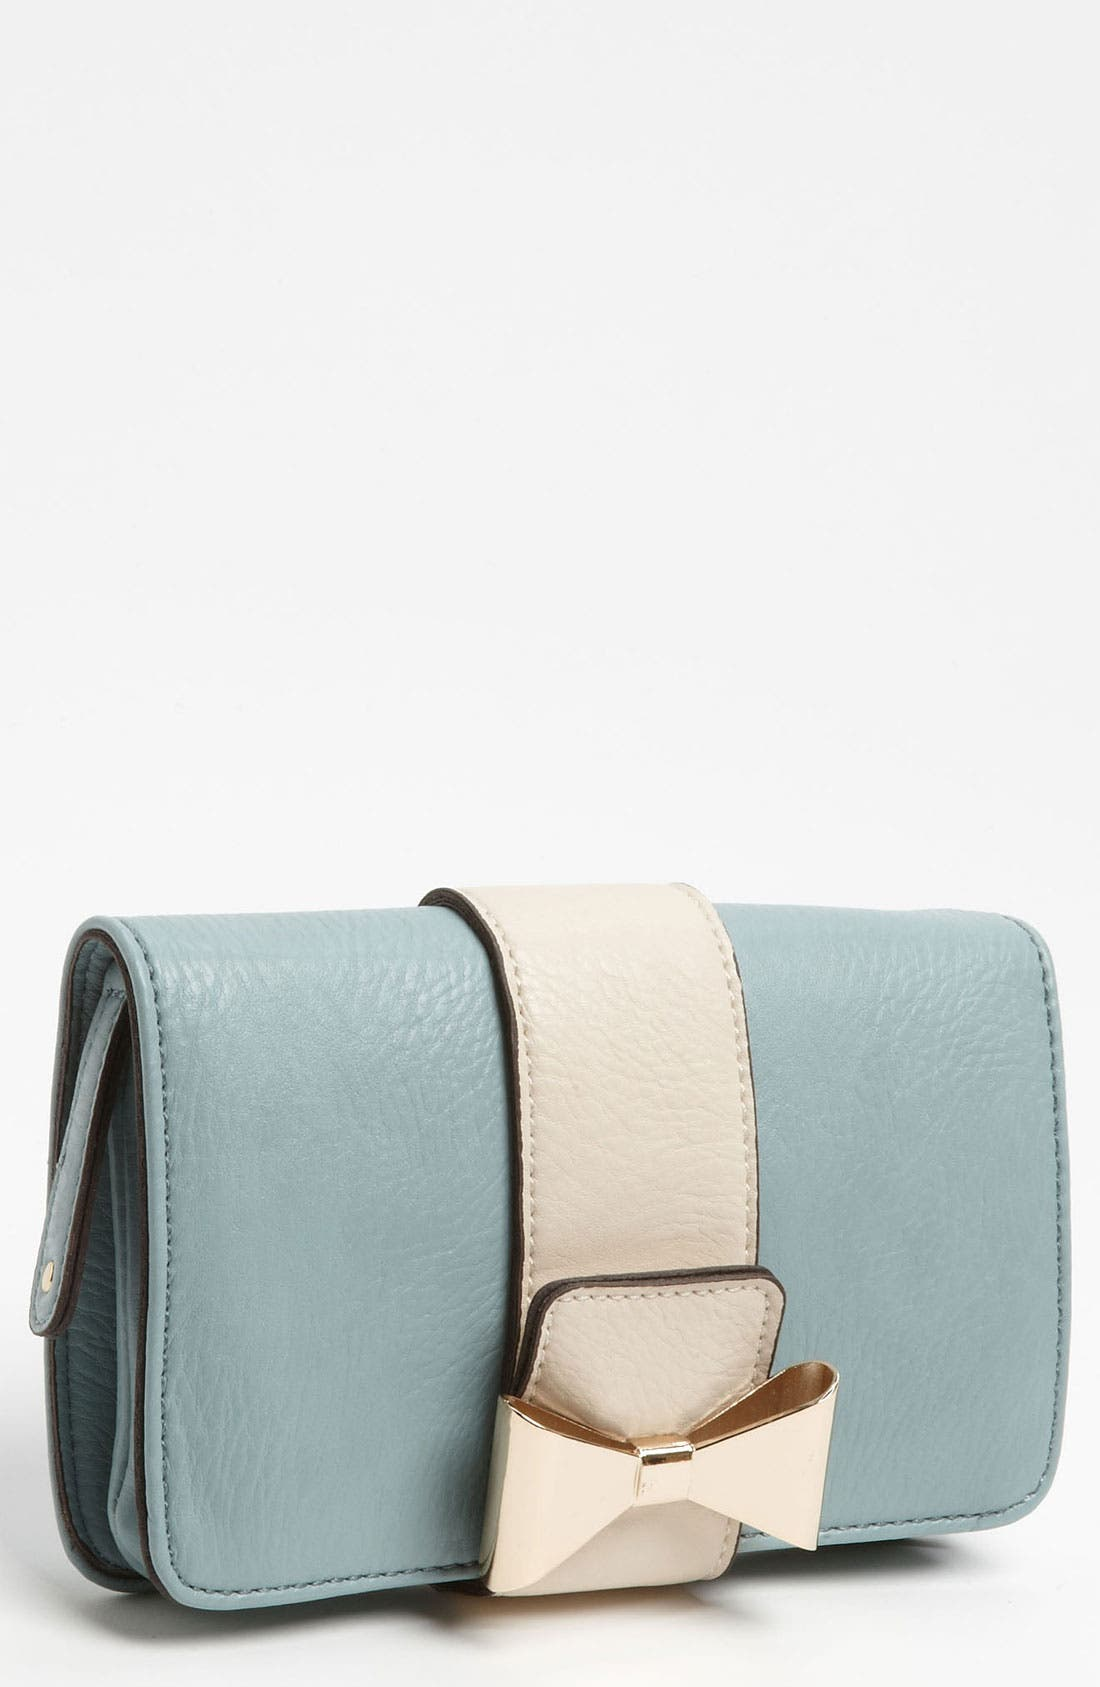 Alternate Image 1 Selected - Street Level 'Metal Bow' Clutch